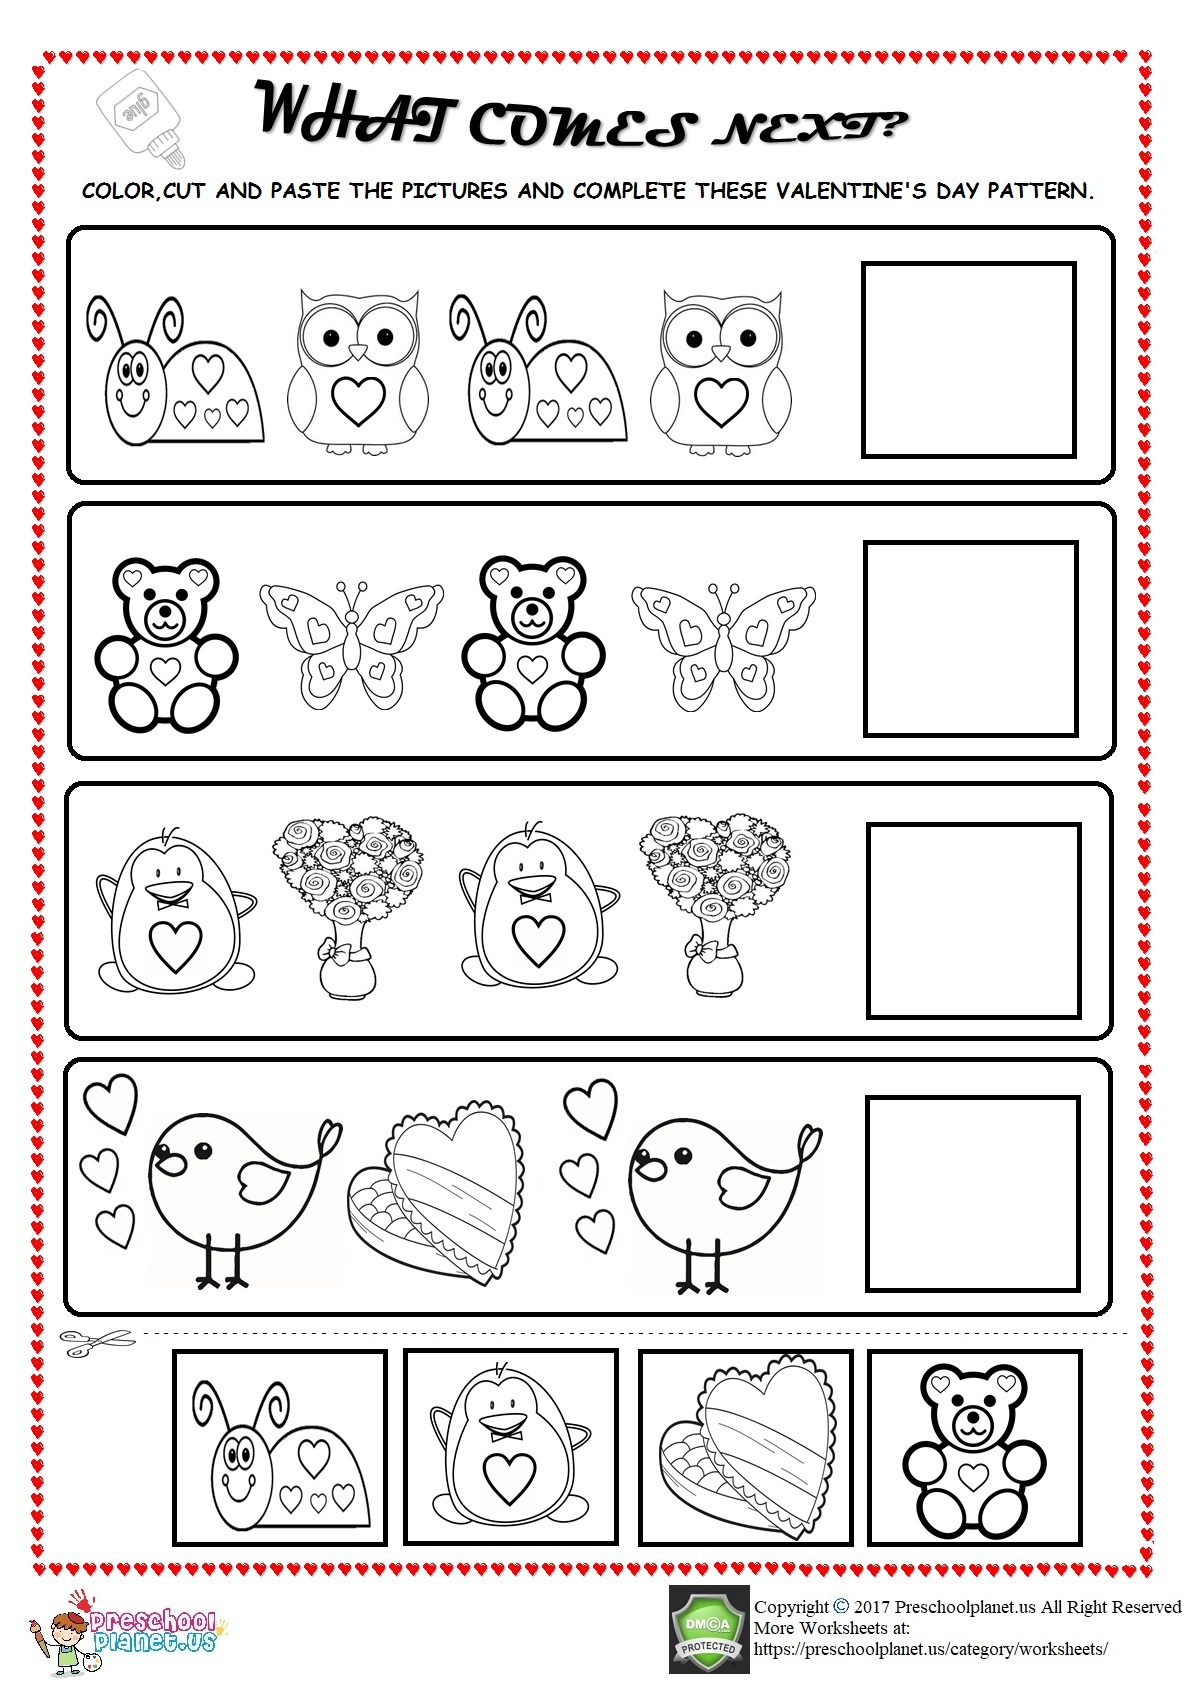 Worksheet Pattern